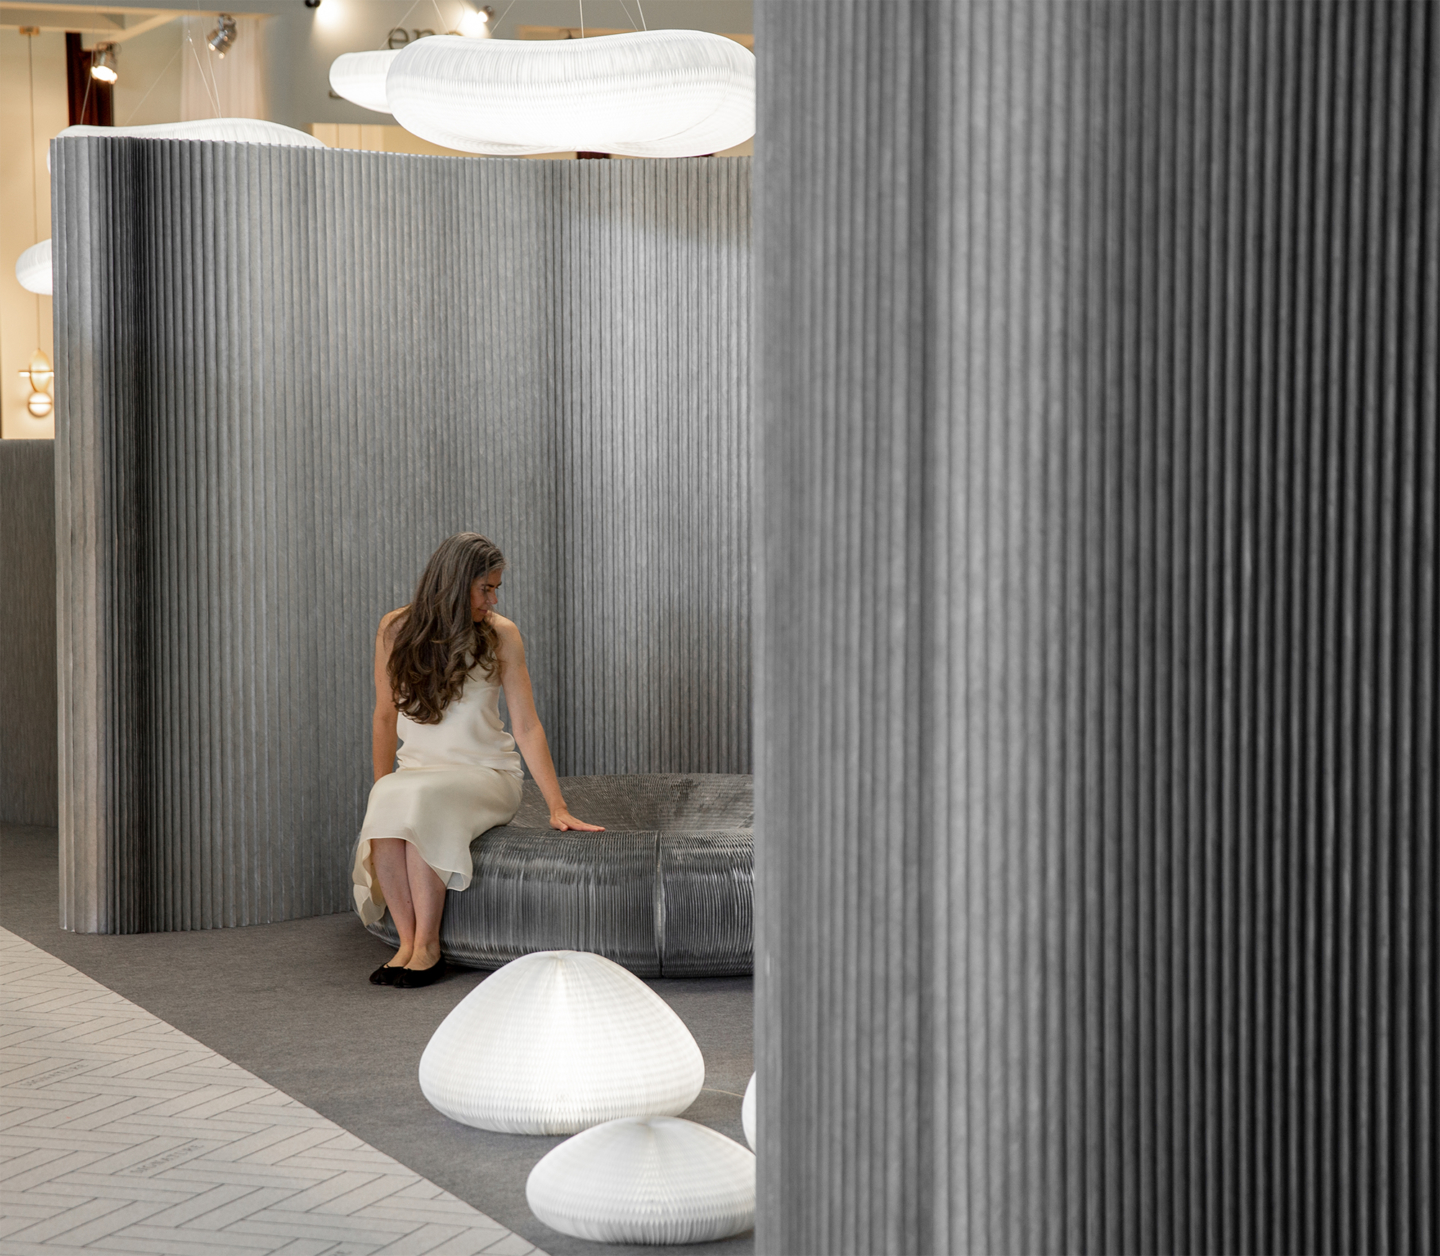 urchin and cloud lighting, flexible seating by molo